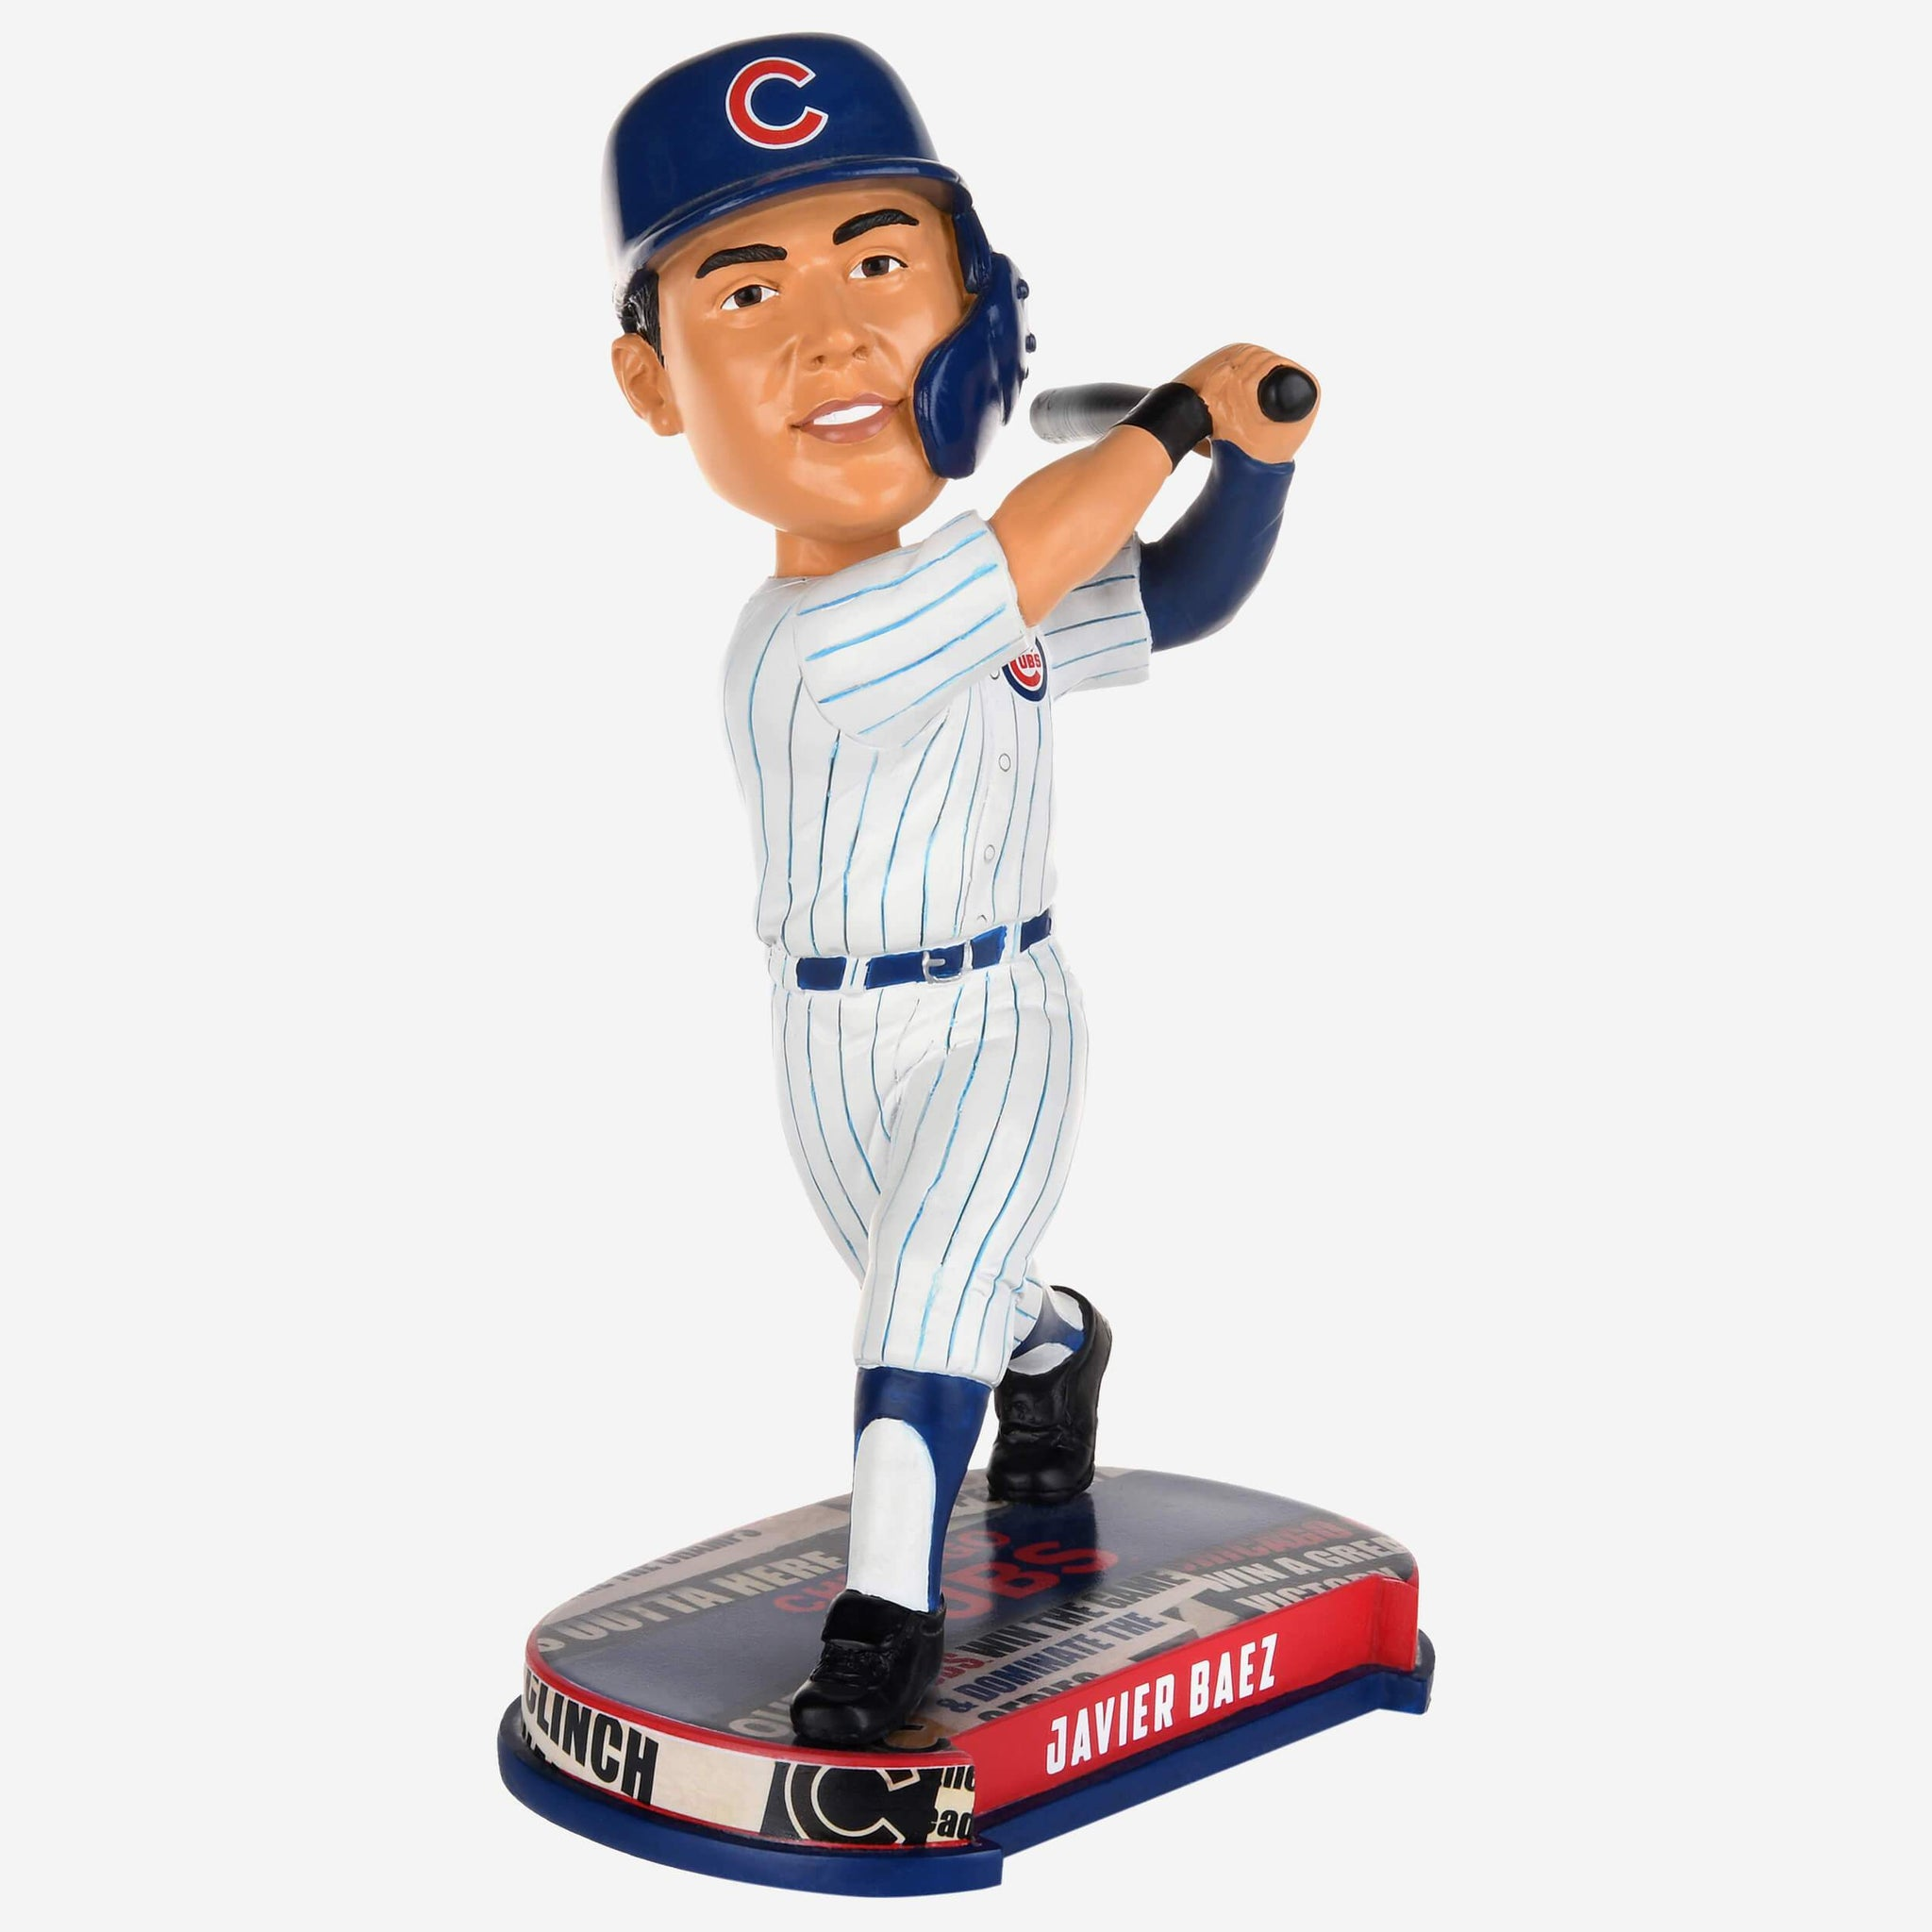 Javier Baez Chicago Cubs Headline Bobblehead